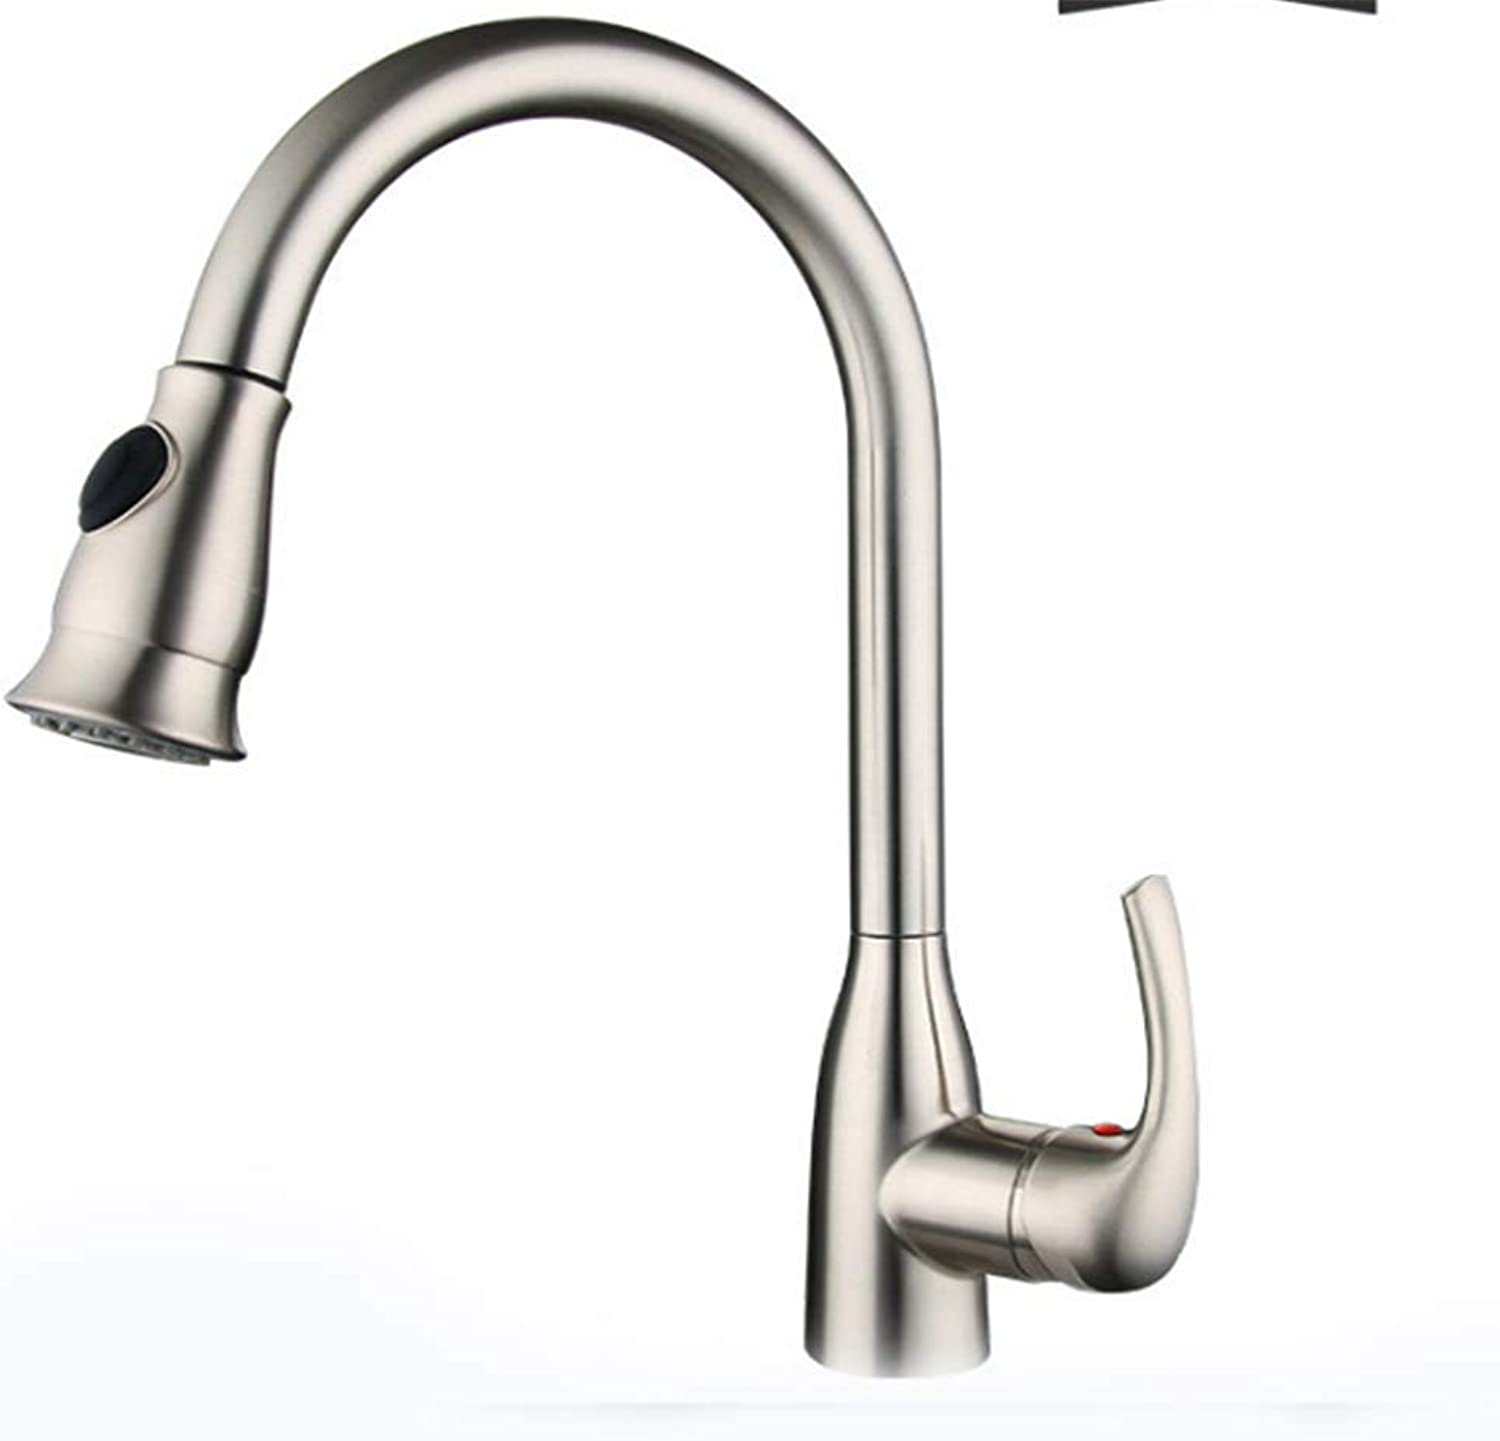 Kitchen Taps Faucet Modern Kitchen Sink Taps Stainless Steelsingle-Hole Cold and Hot Water Faucet Multi-Functional Sprinkler Kitchen Sink Faucet